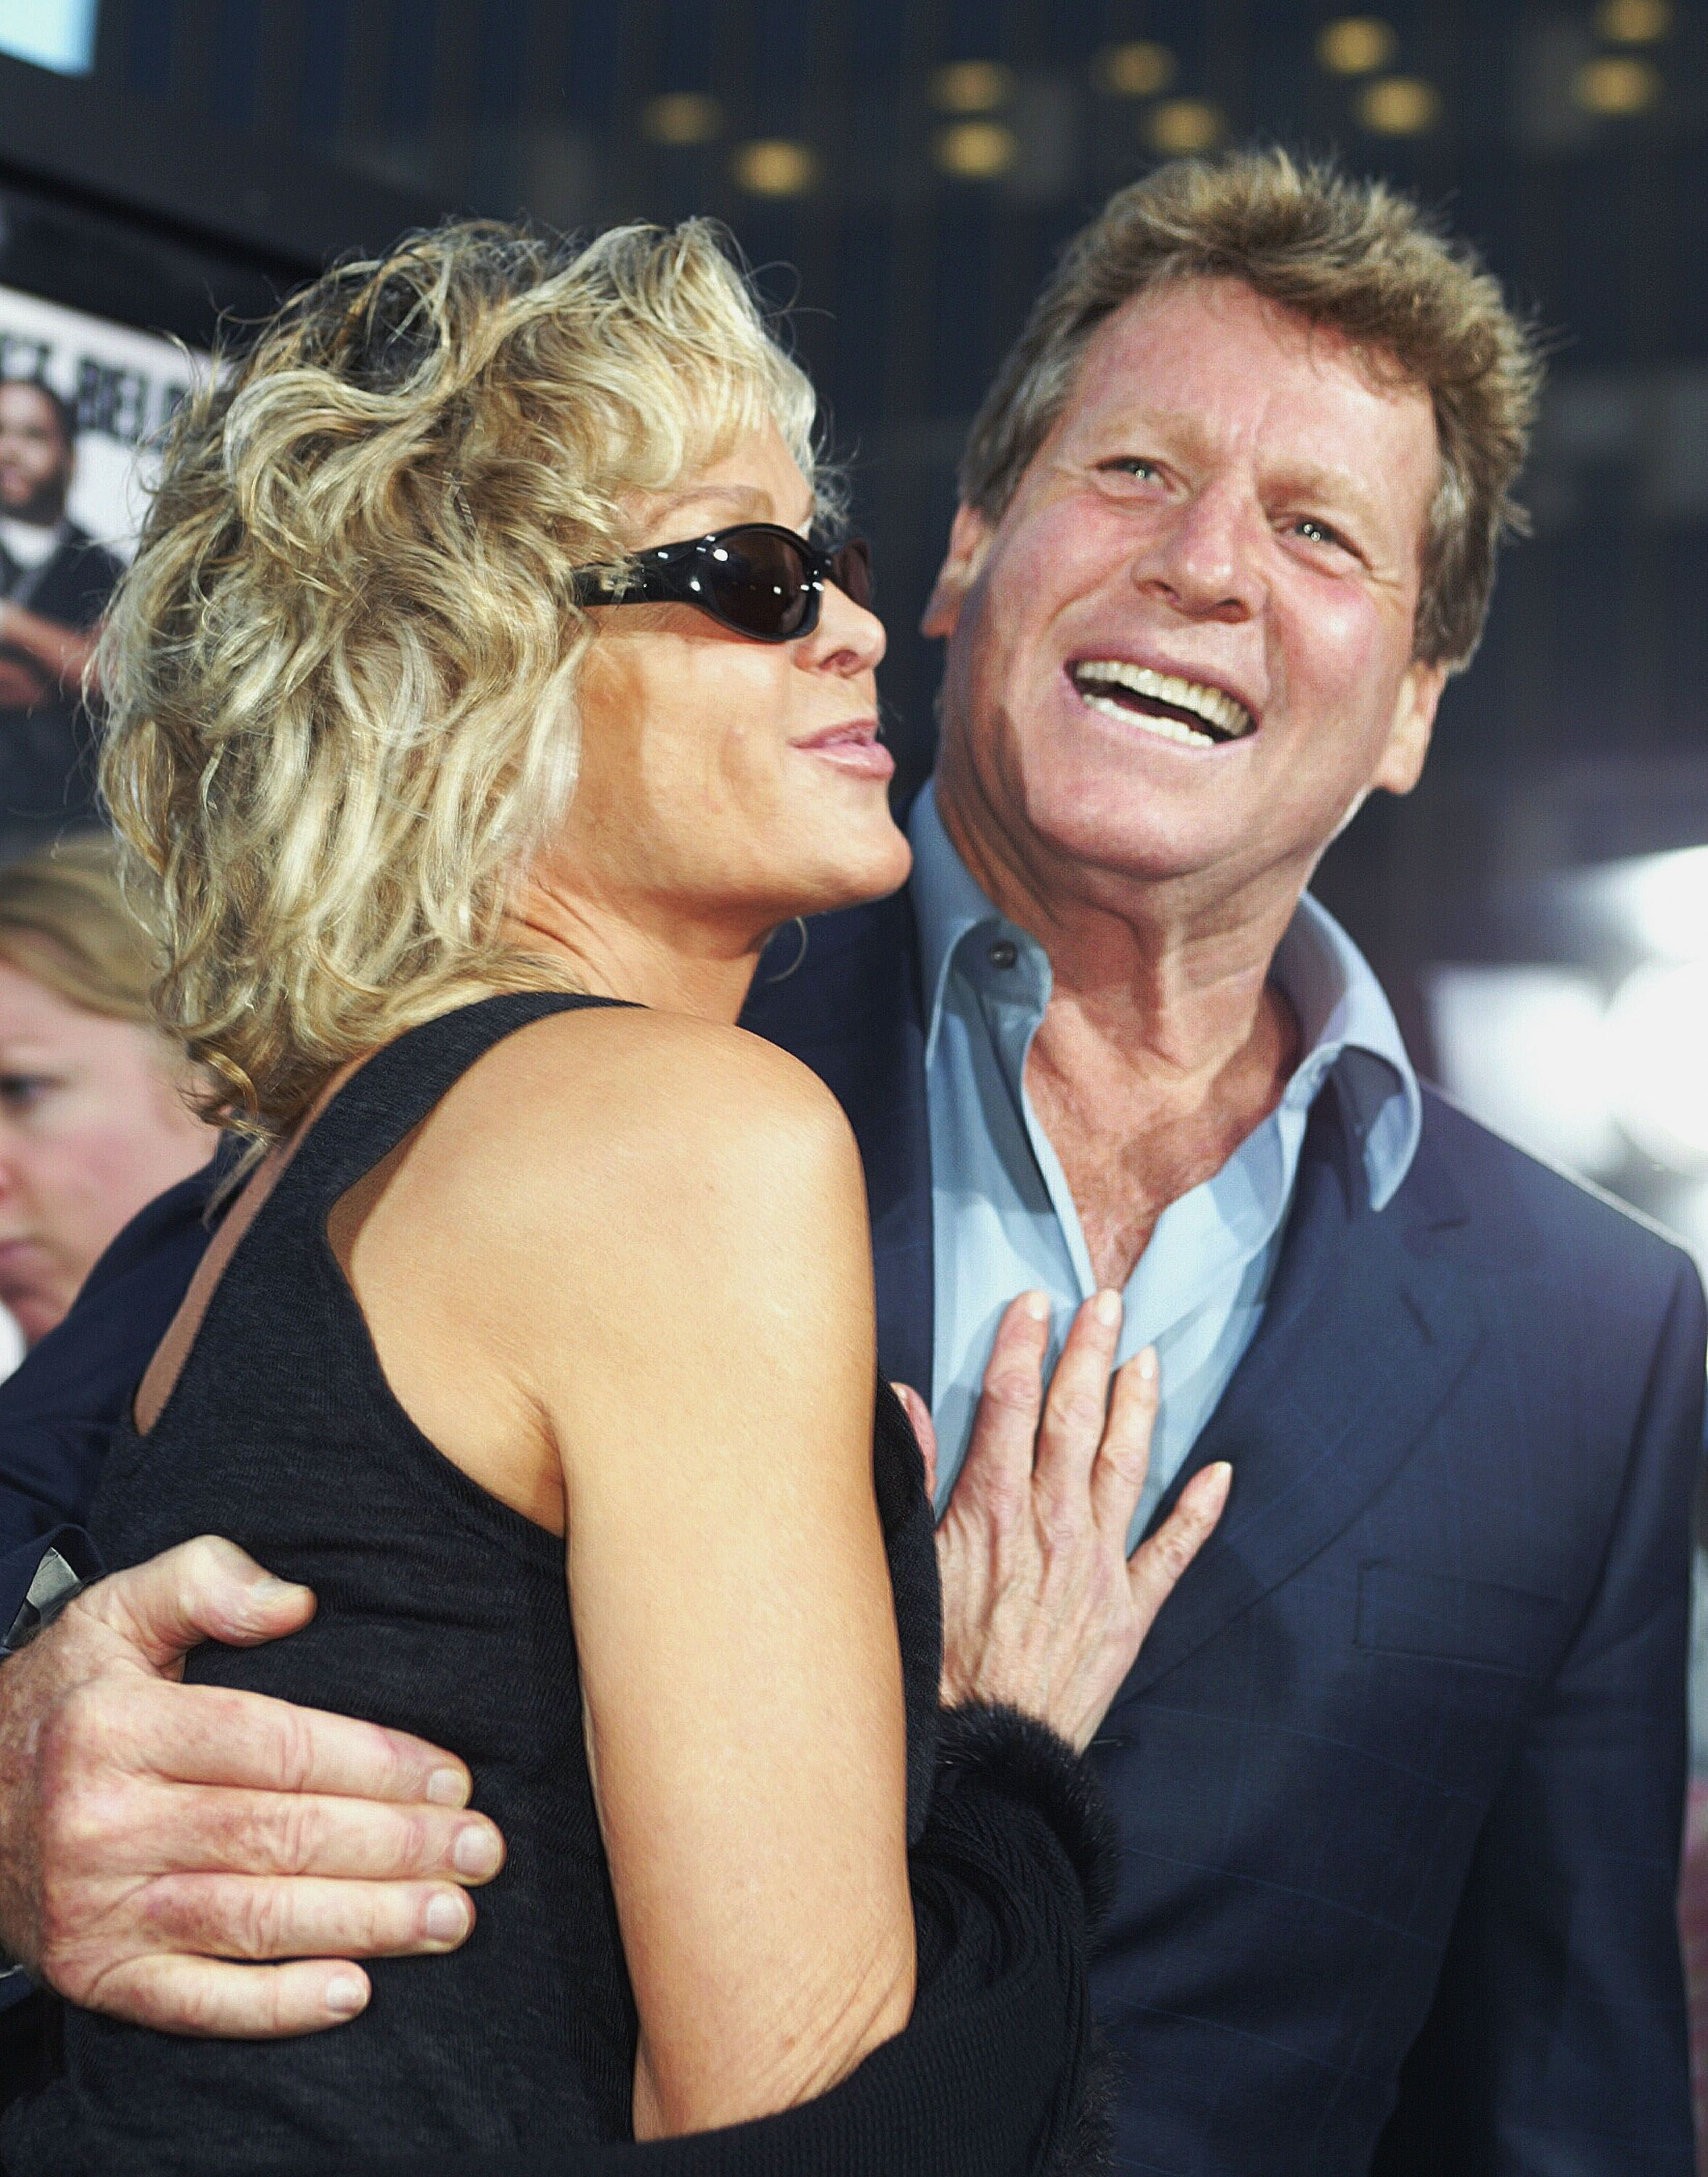 """Farrah Fawcett and Ryan O'Neal at the after-party for """"Malibu's Most Wanted"""" in 2003